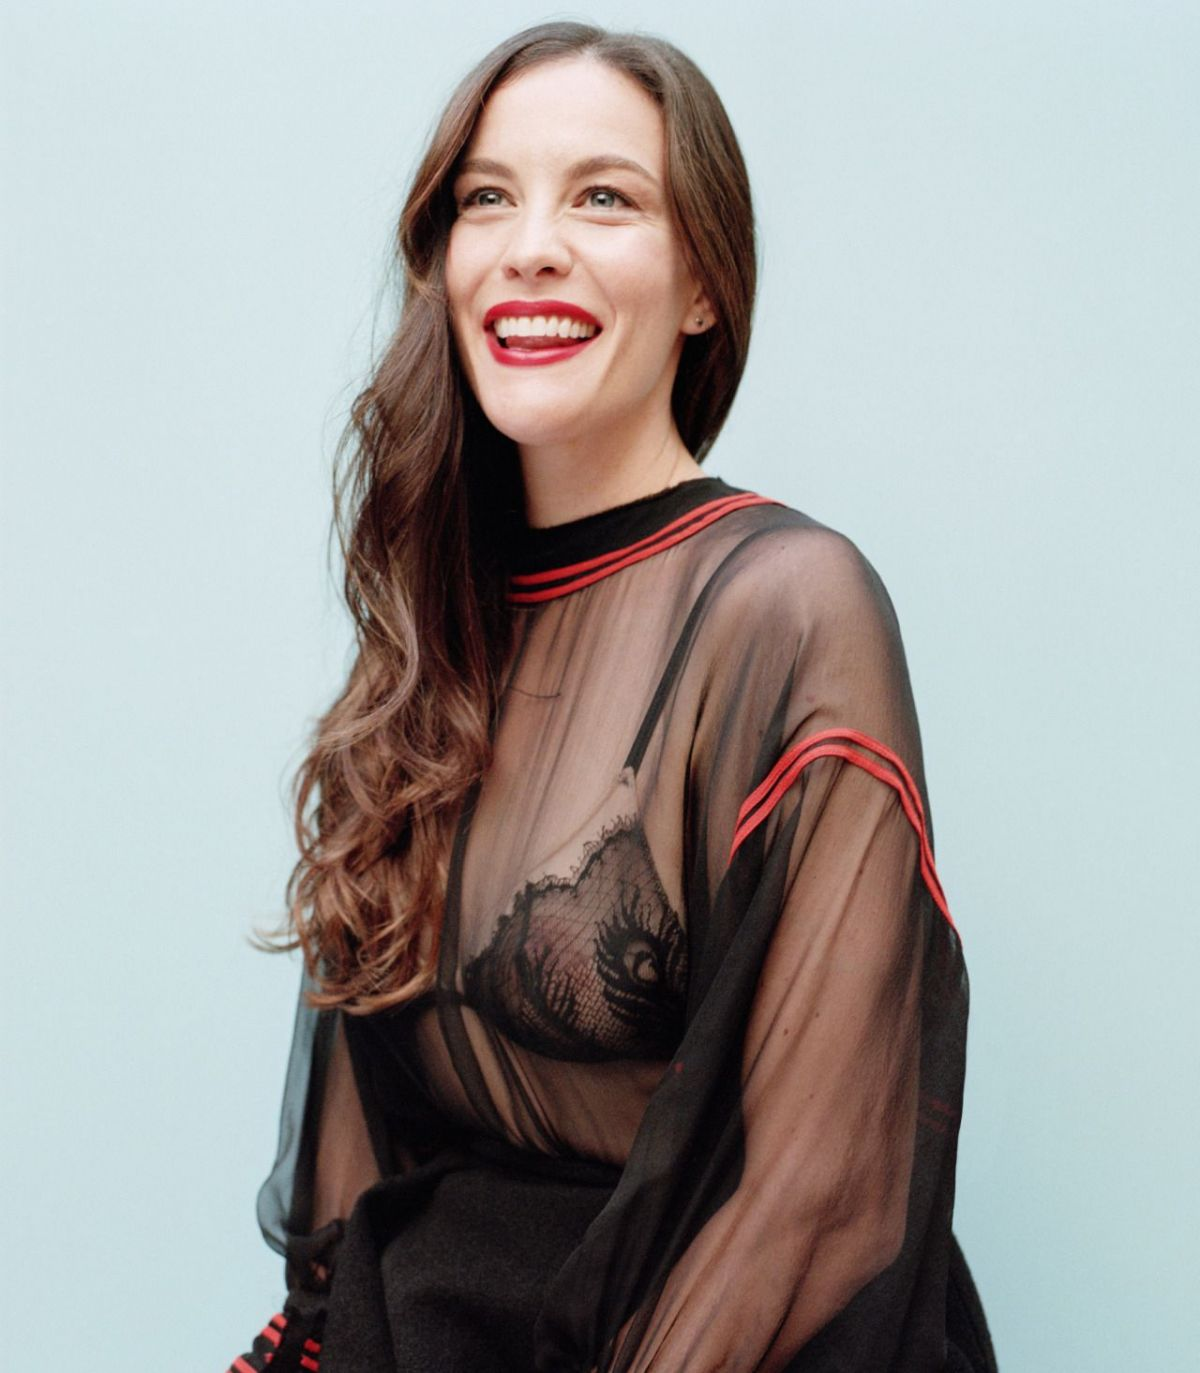 Liv Tyler | Playboy Playmates – My Private Collection